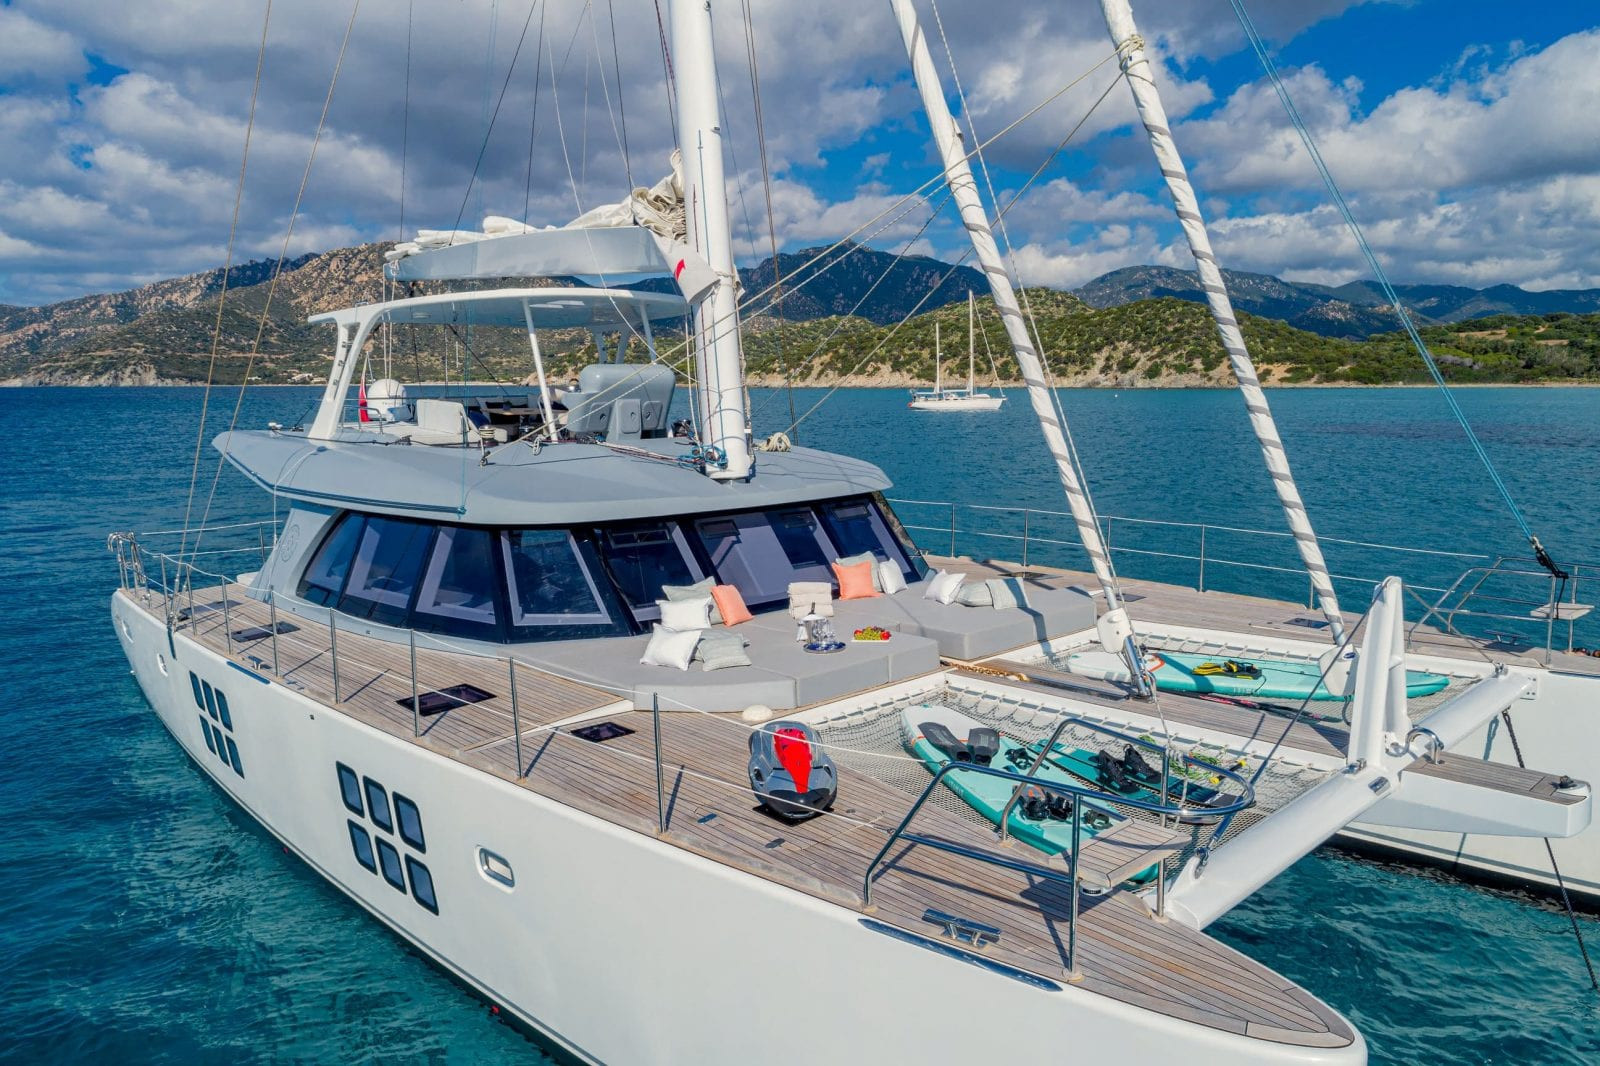 ADEA - Sunreef 62 sailing yacht, set up for charter guests